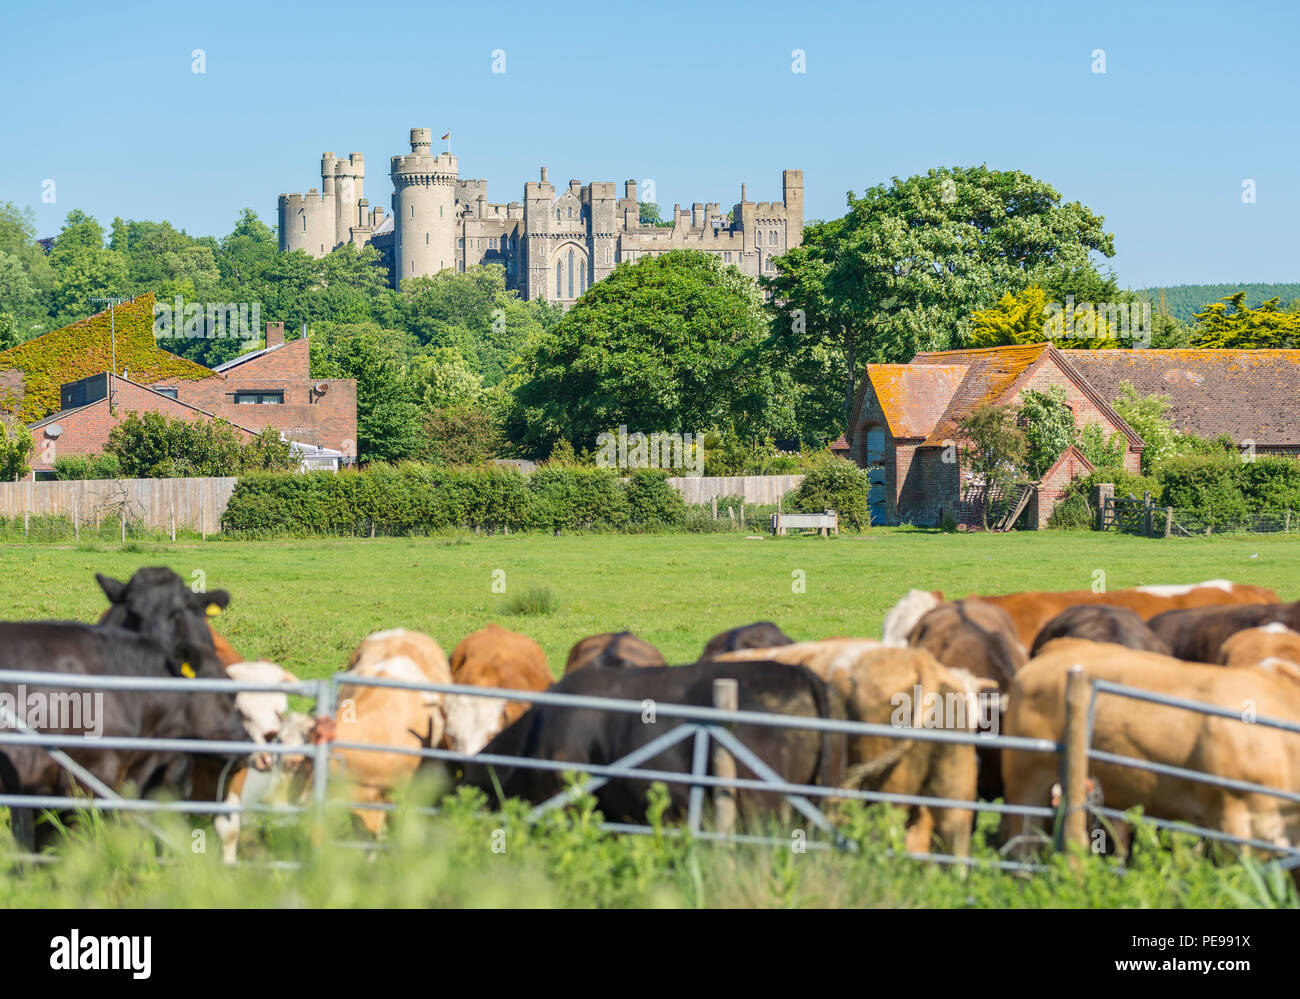 Arundel Castle in the UK countrside, from a cows field in the Arun Valley in Arundel, West Sussex, England, UK. British castle. Castle UK. - Stock Image